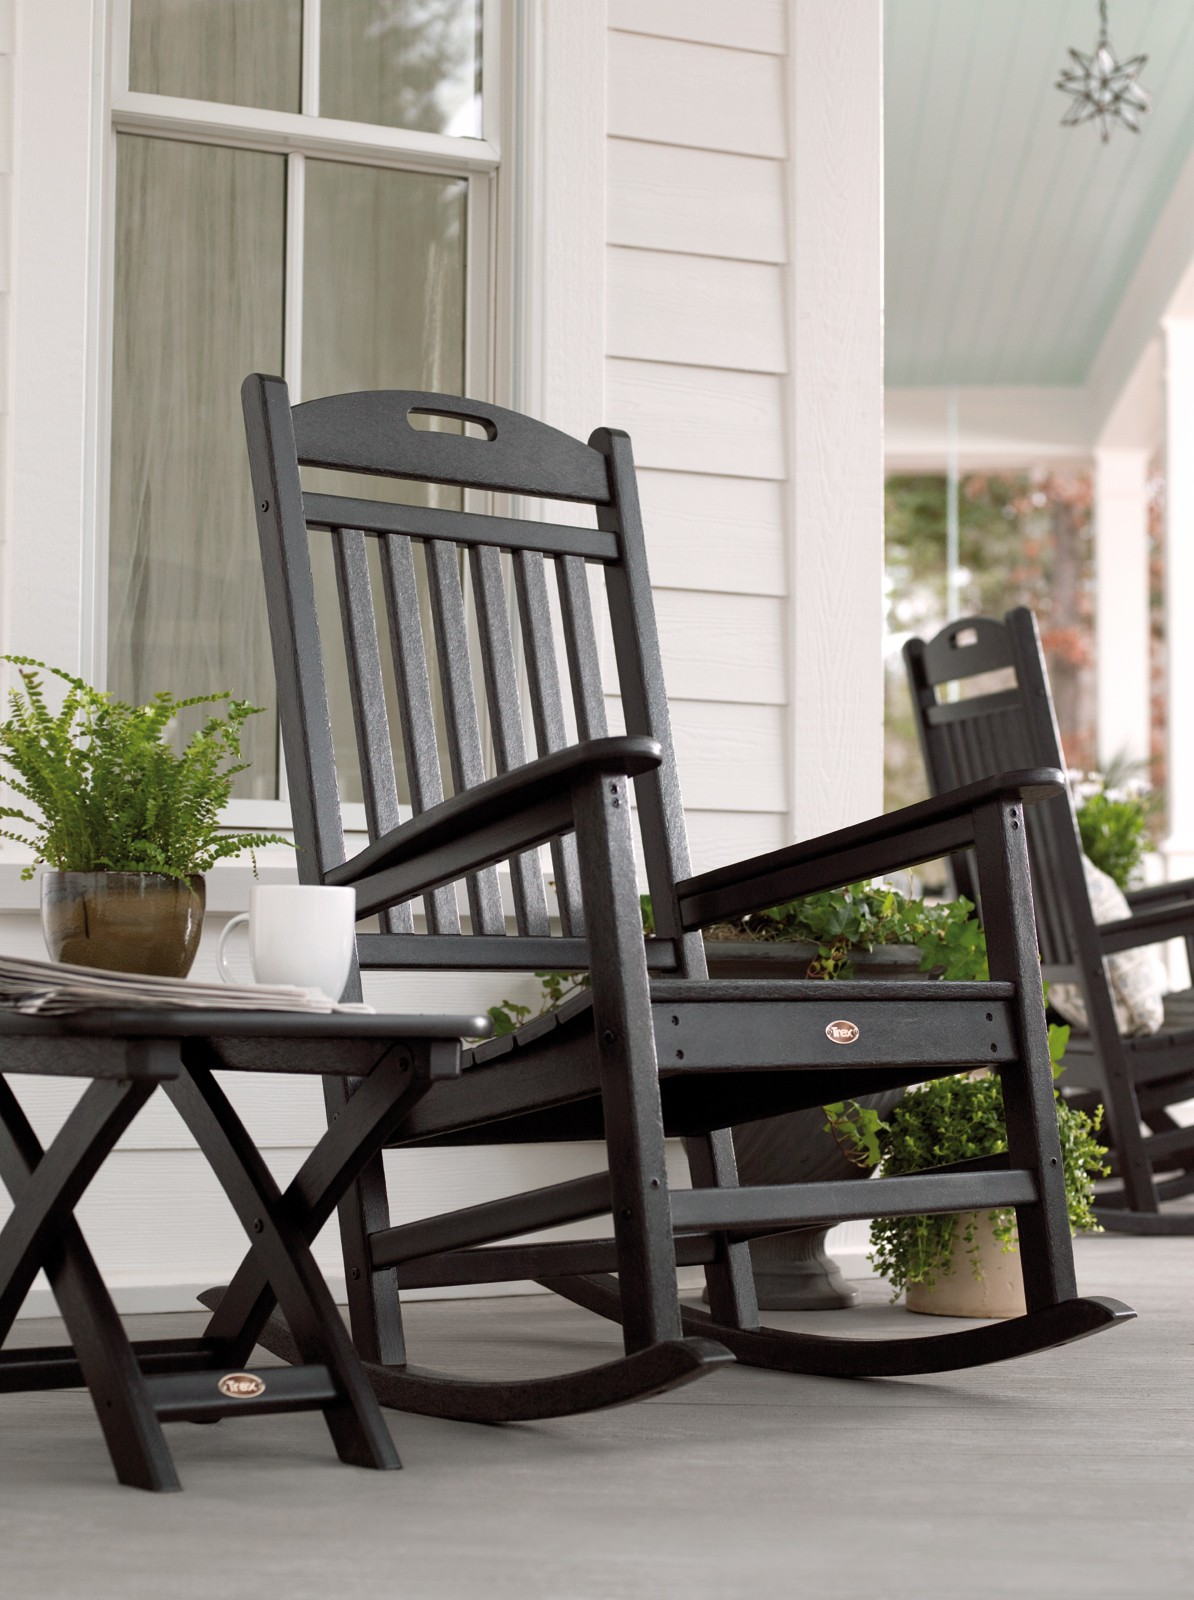 outdoor rocking chairs more images XQCNYQJ